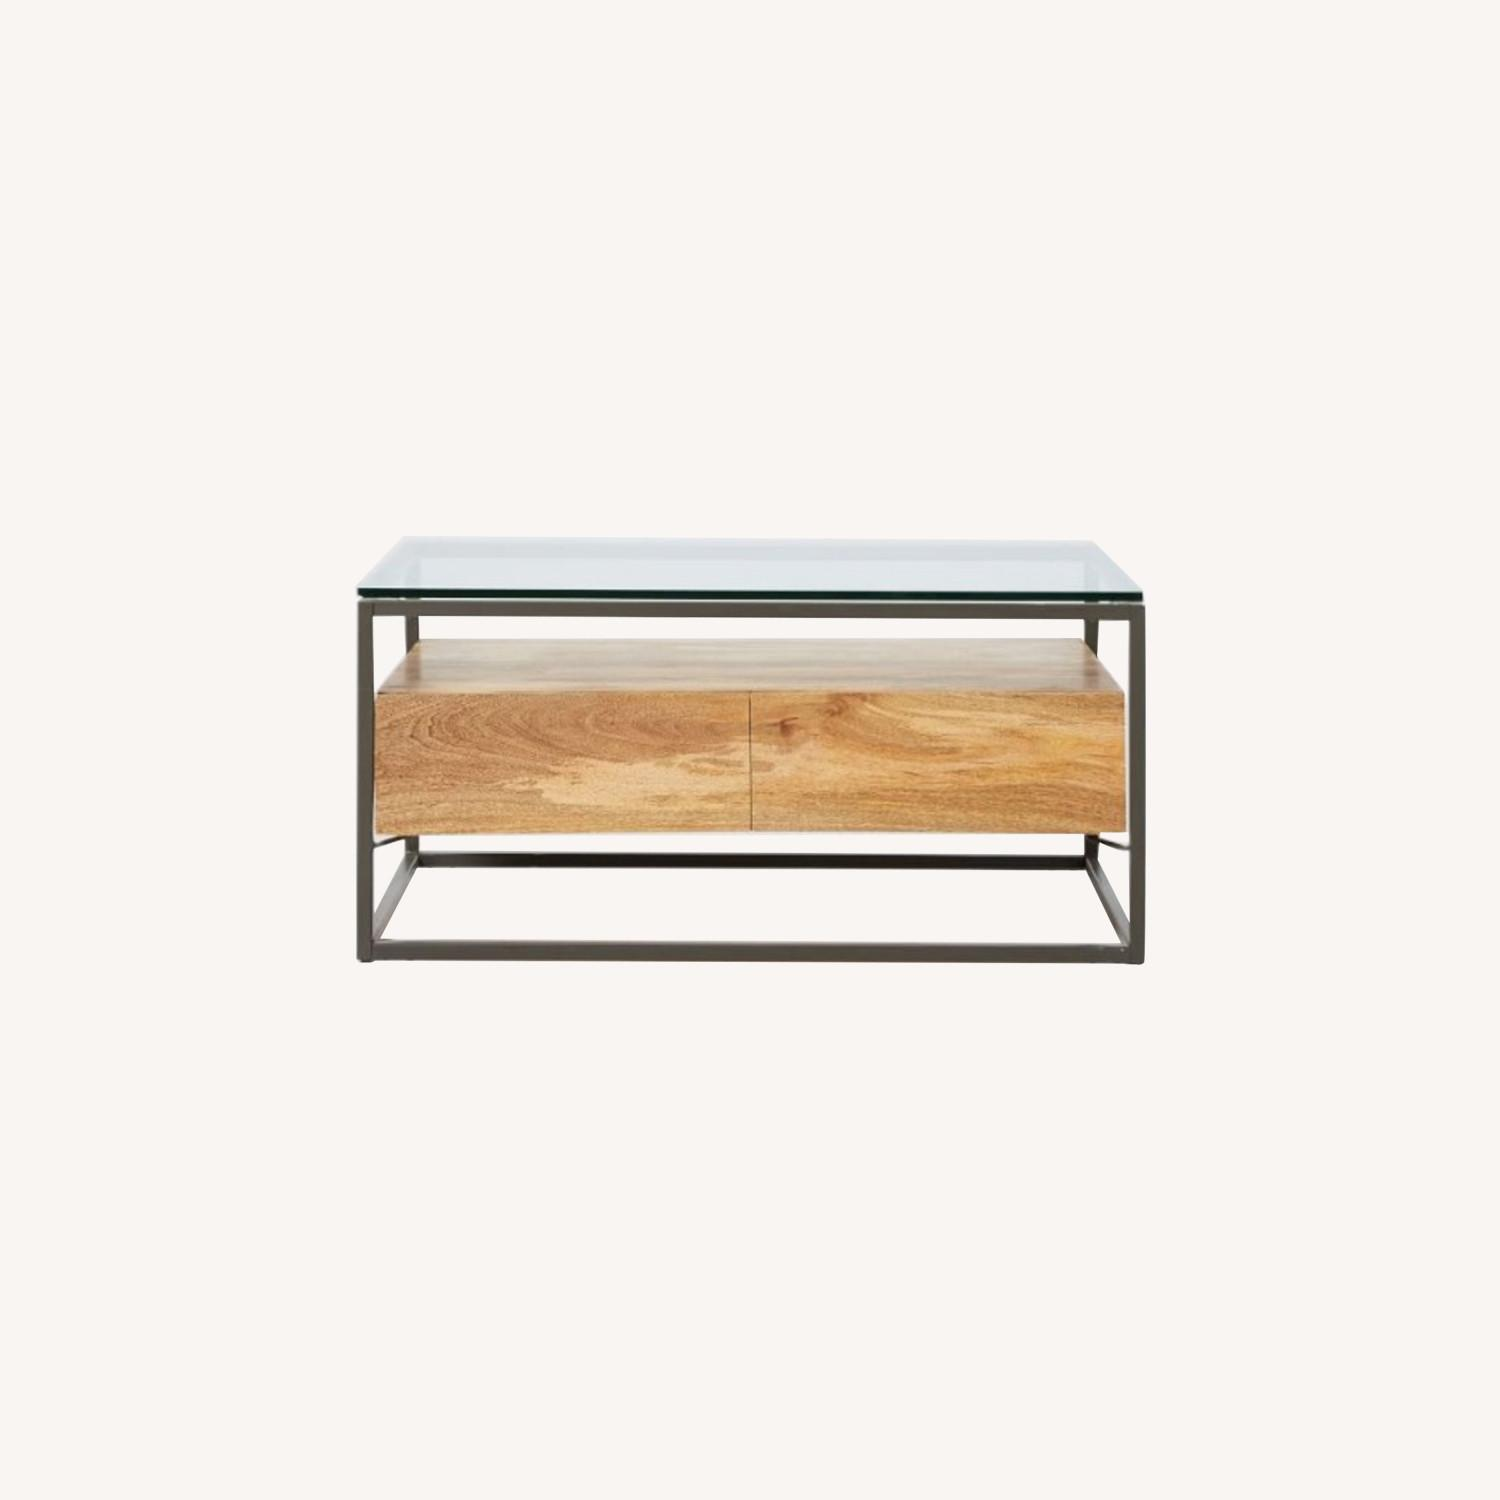 West Elm Box Frame Storage Coffee Table, Raw Mango, Large - image-0